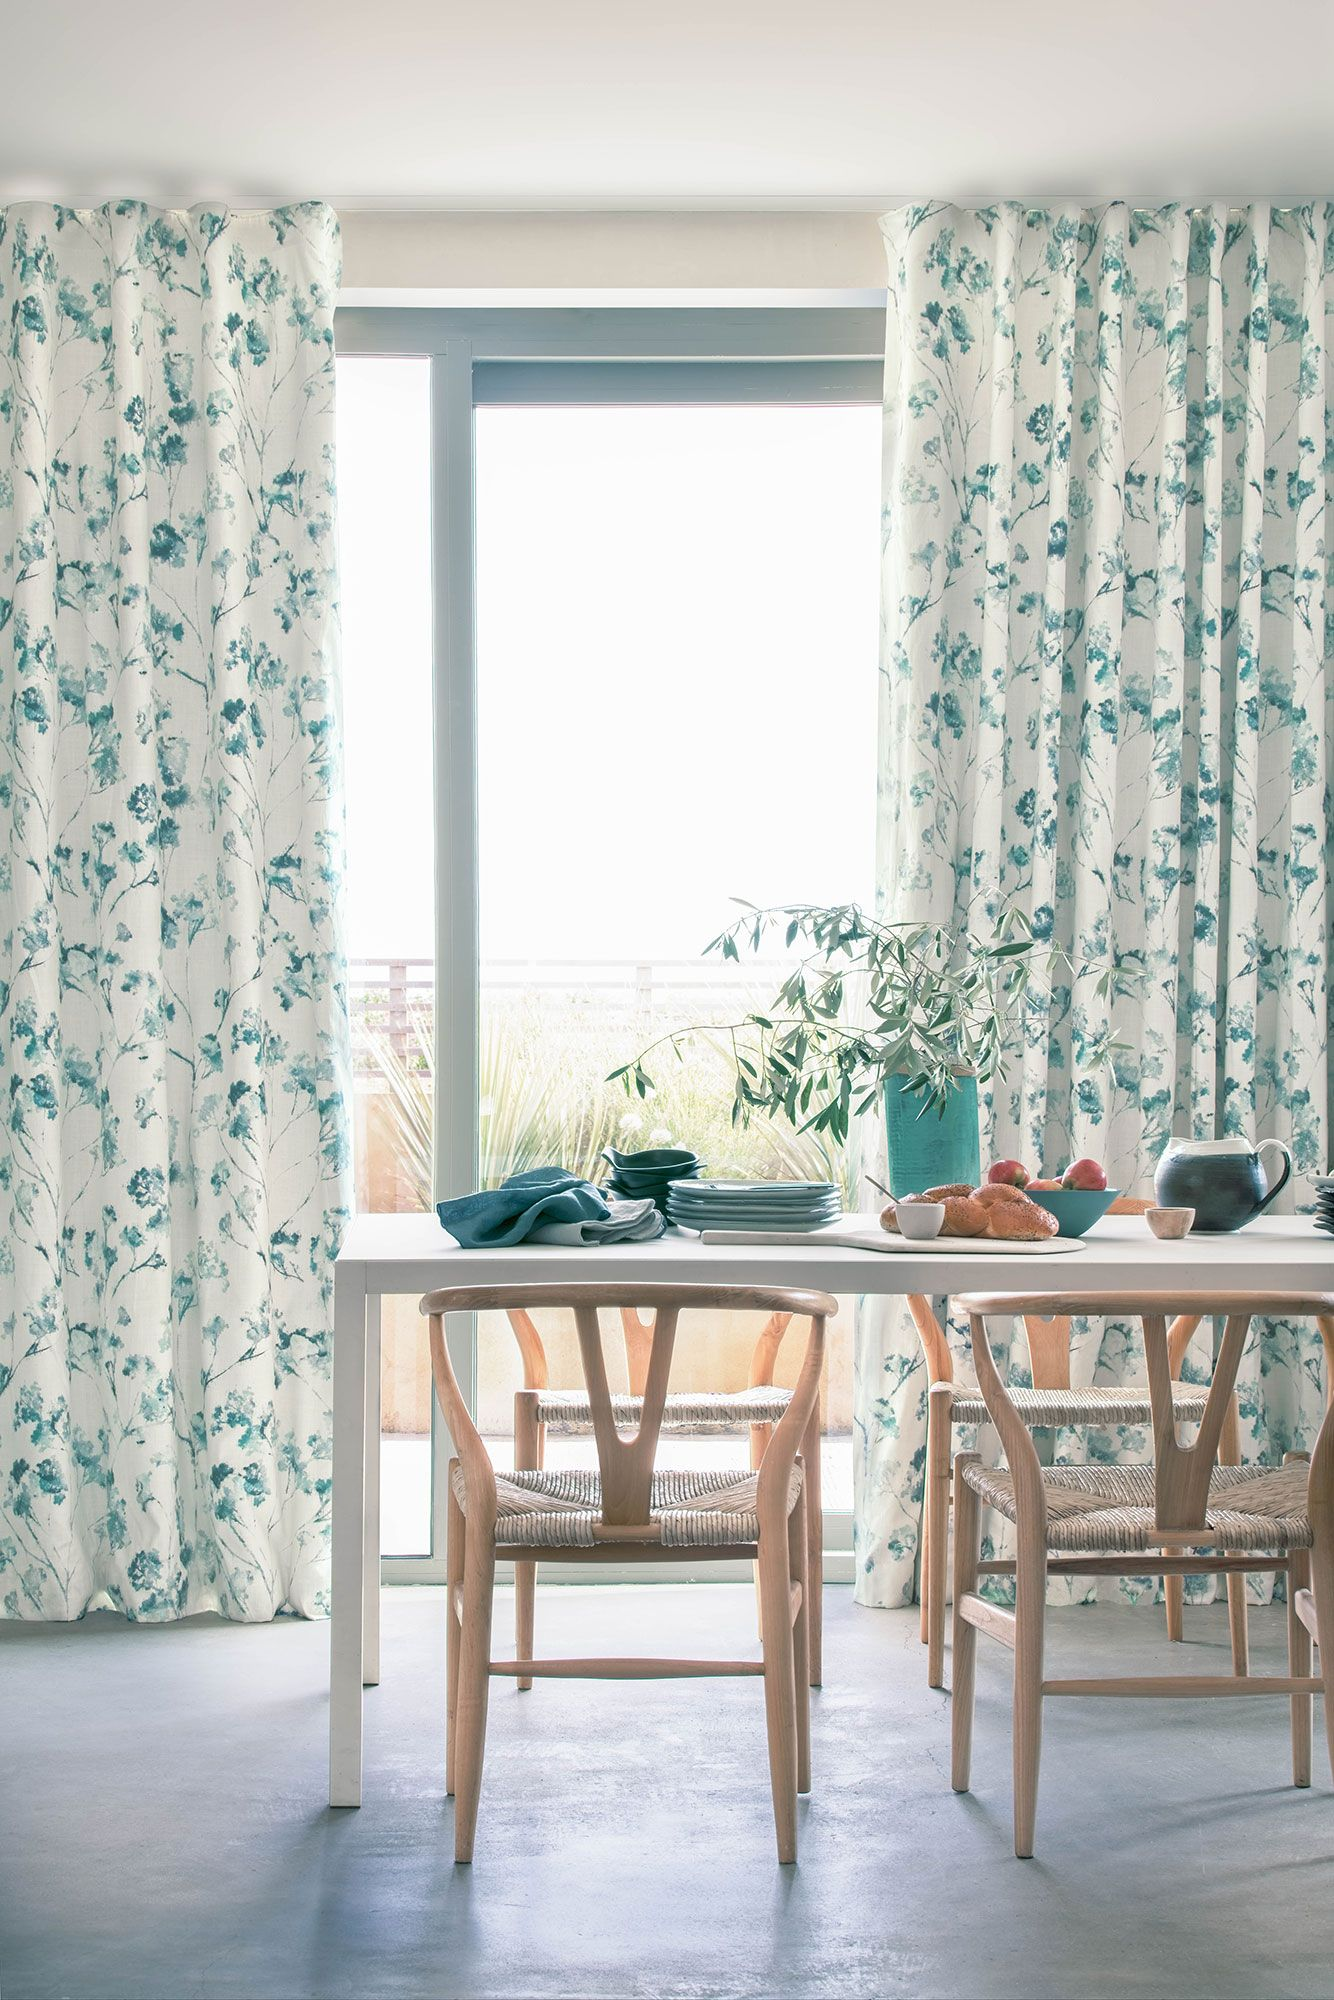 Kitchen Curtains Made To Measure In The Uk Hillarys